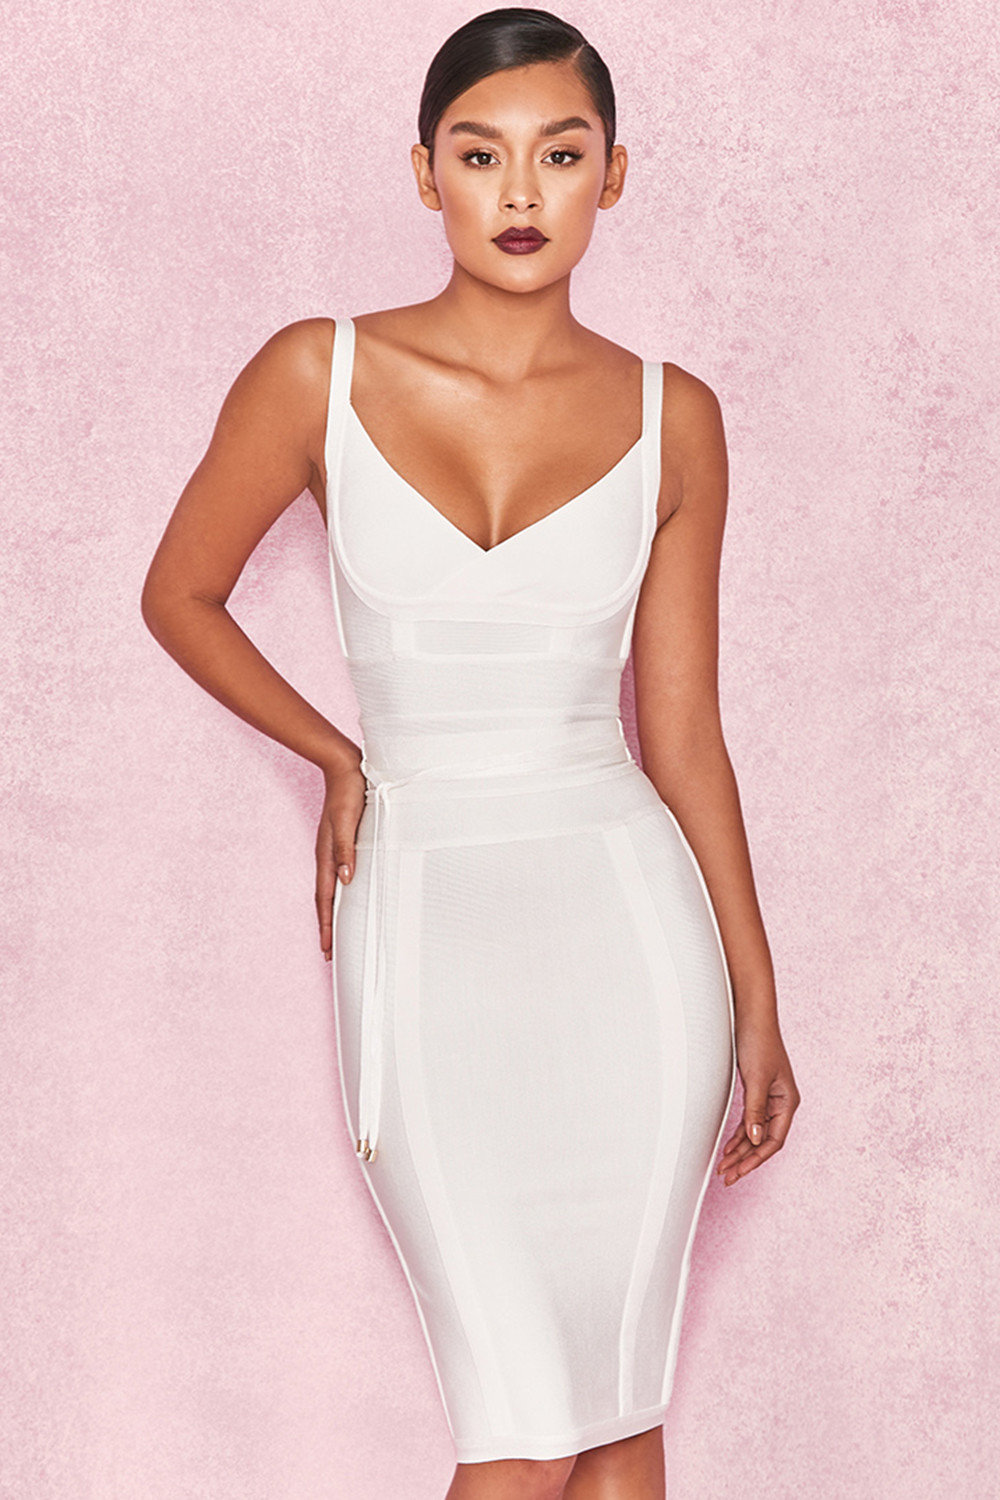 e8f041d1aa08 Clothing   Bandage Dresses    Belice  White Tie Waist Bandage Dress